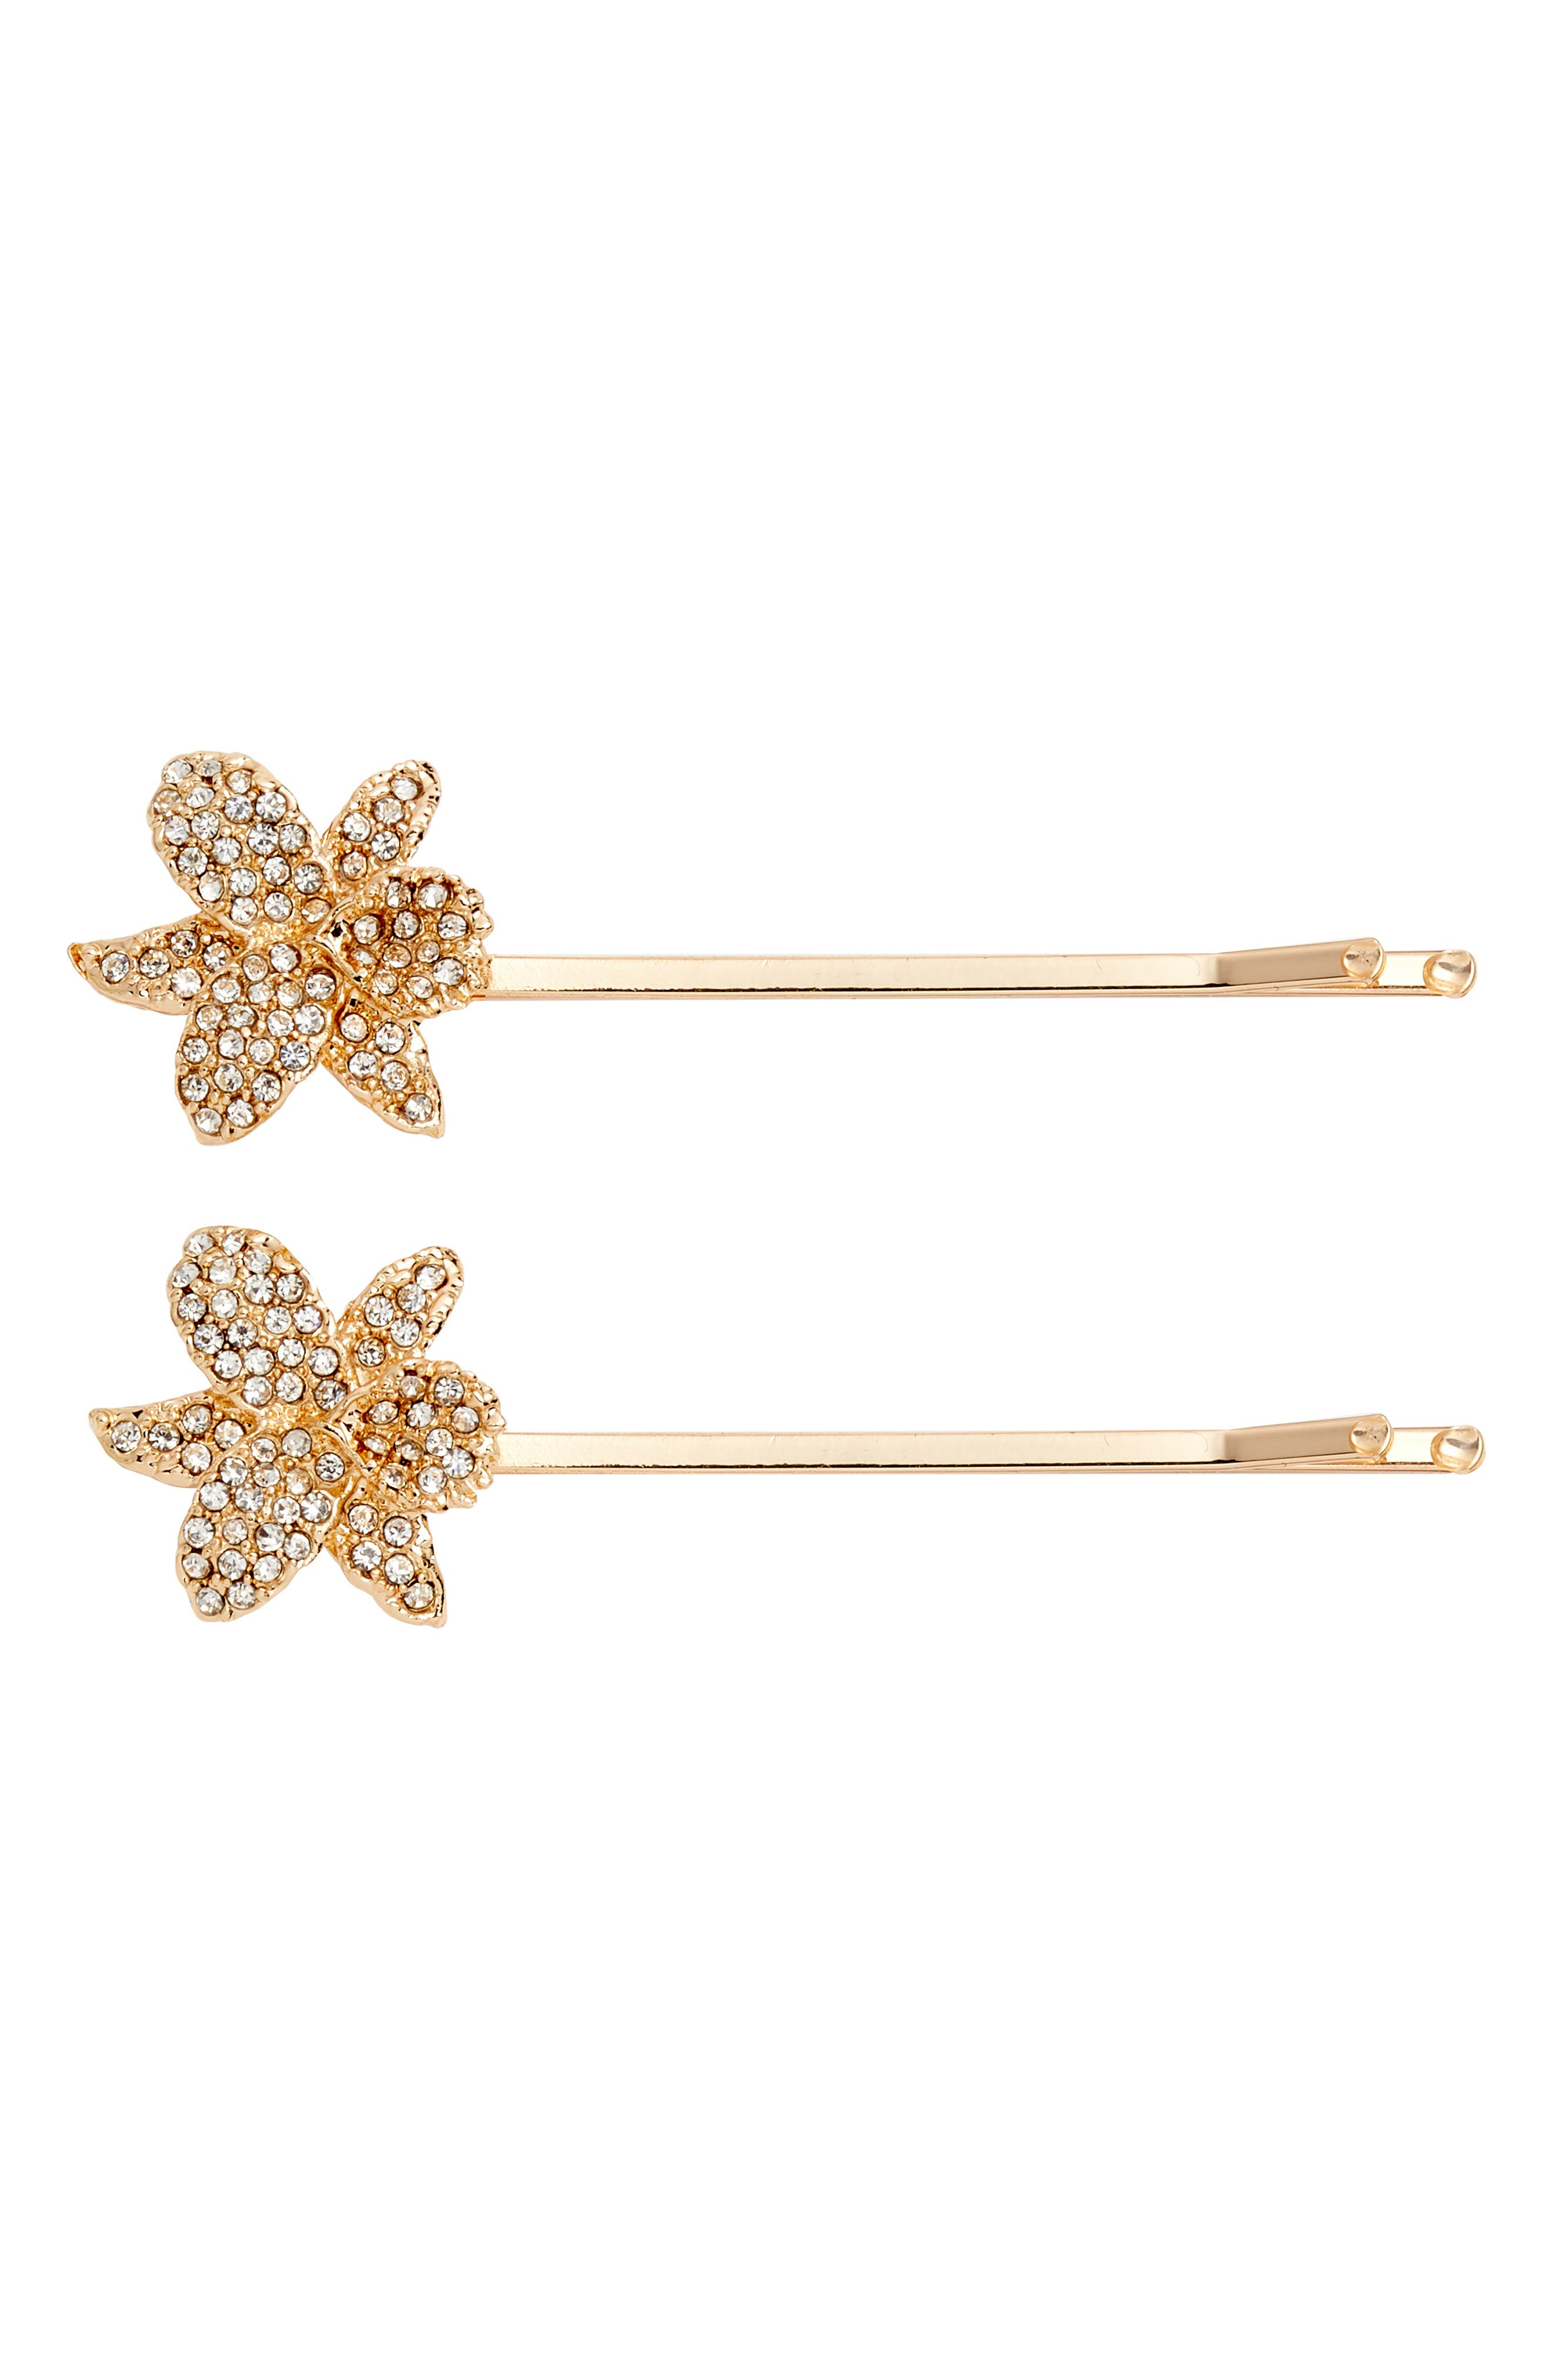 Small Orchid Bobby Pins,                         Main,                         color, White/ Rose Gold